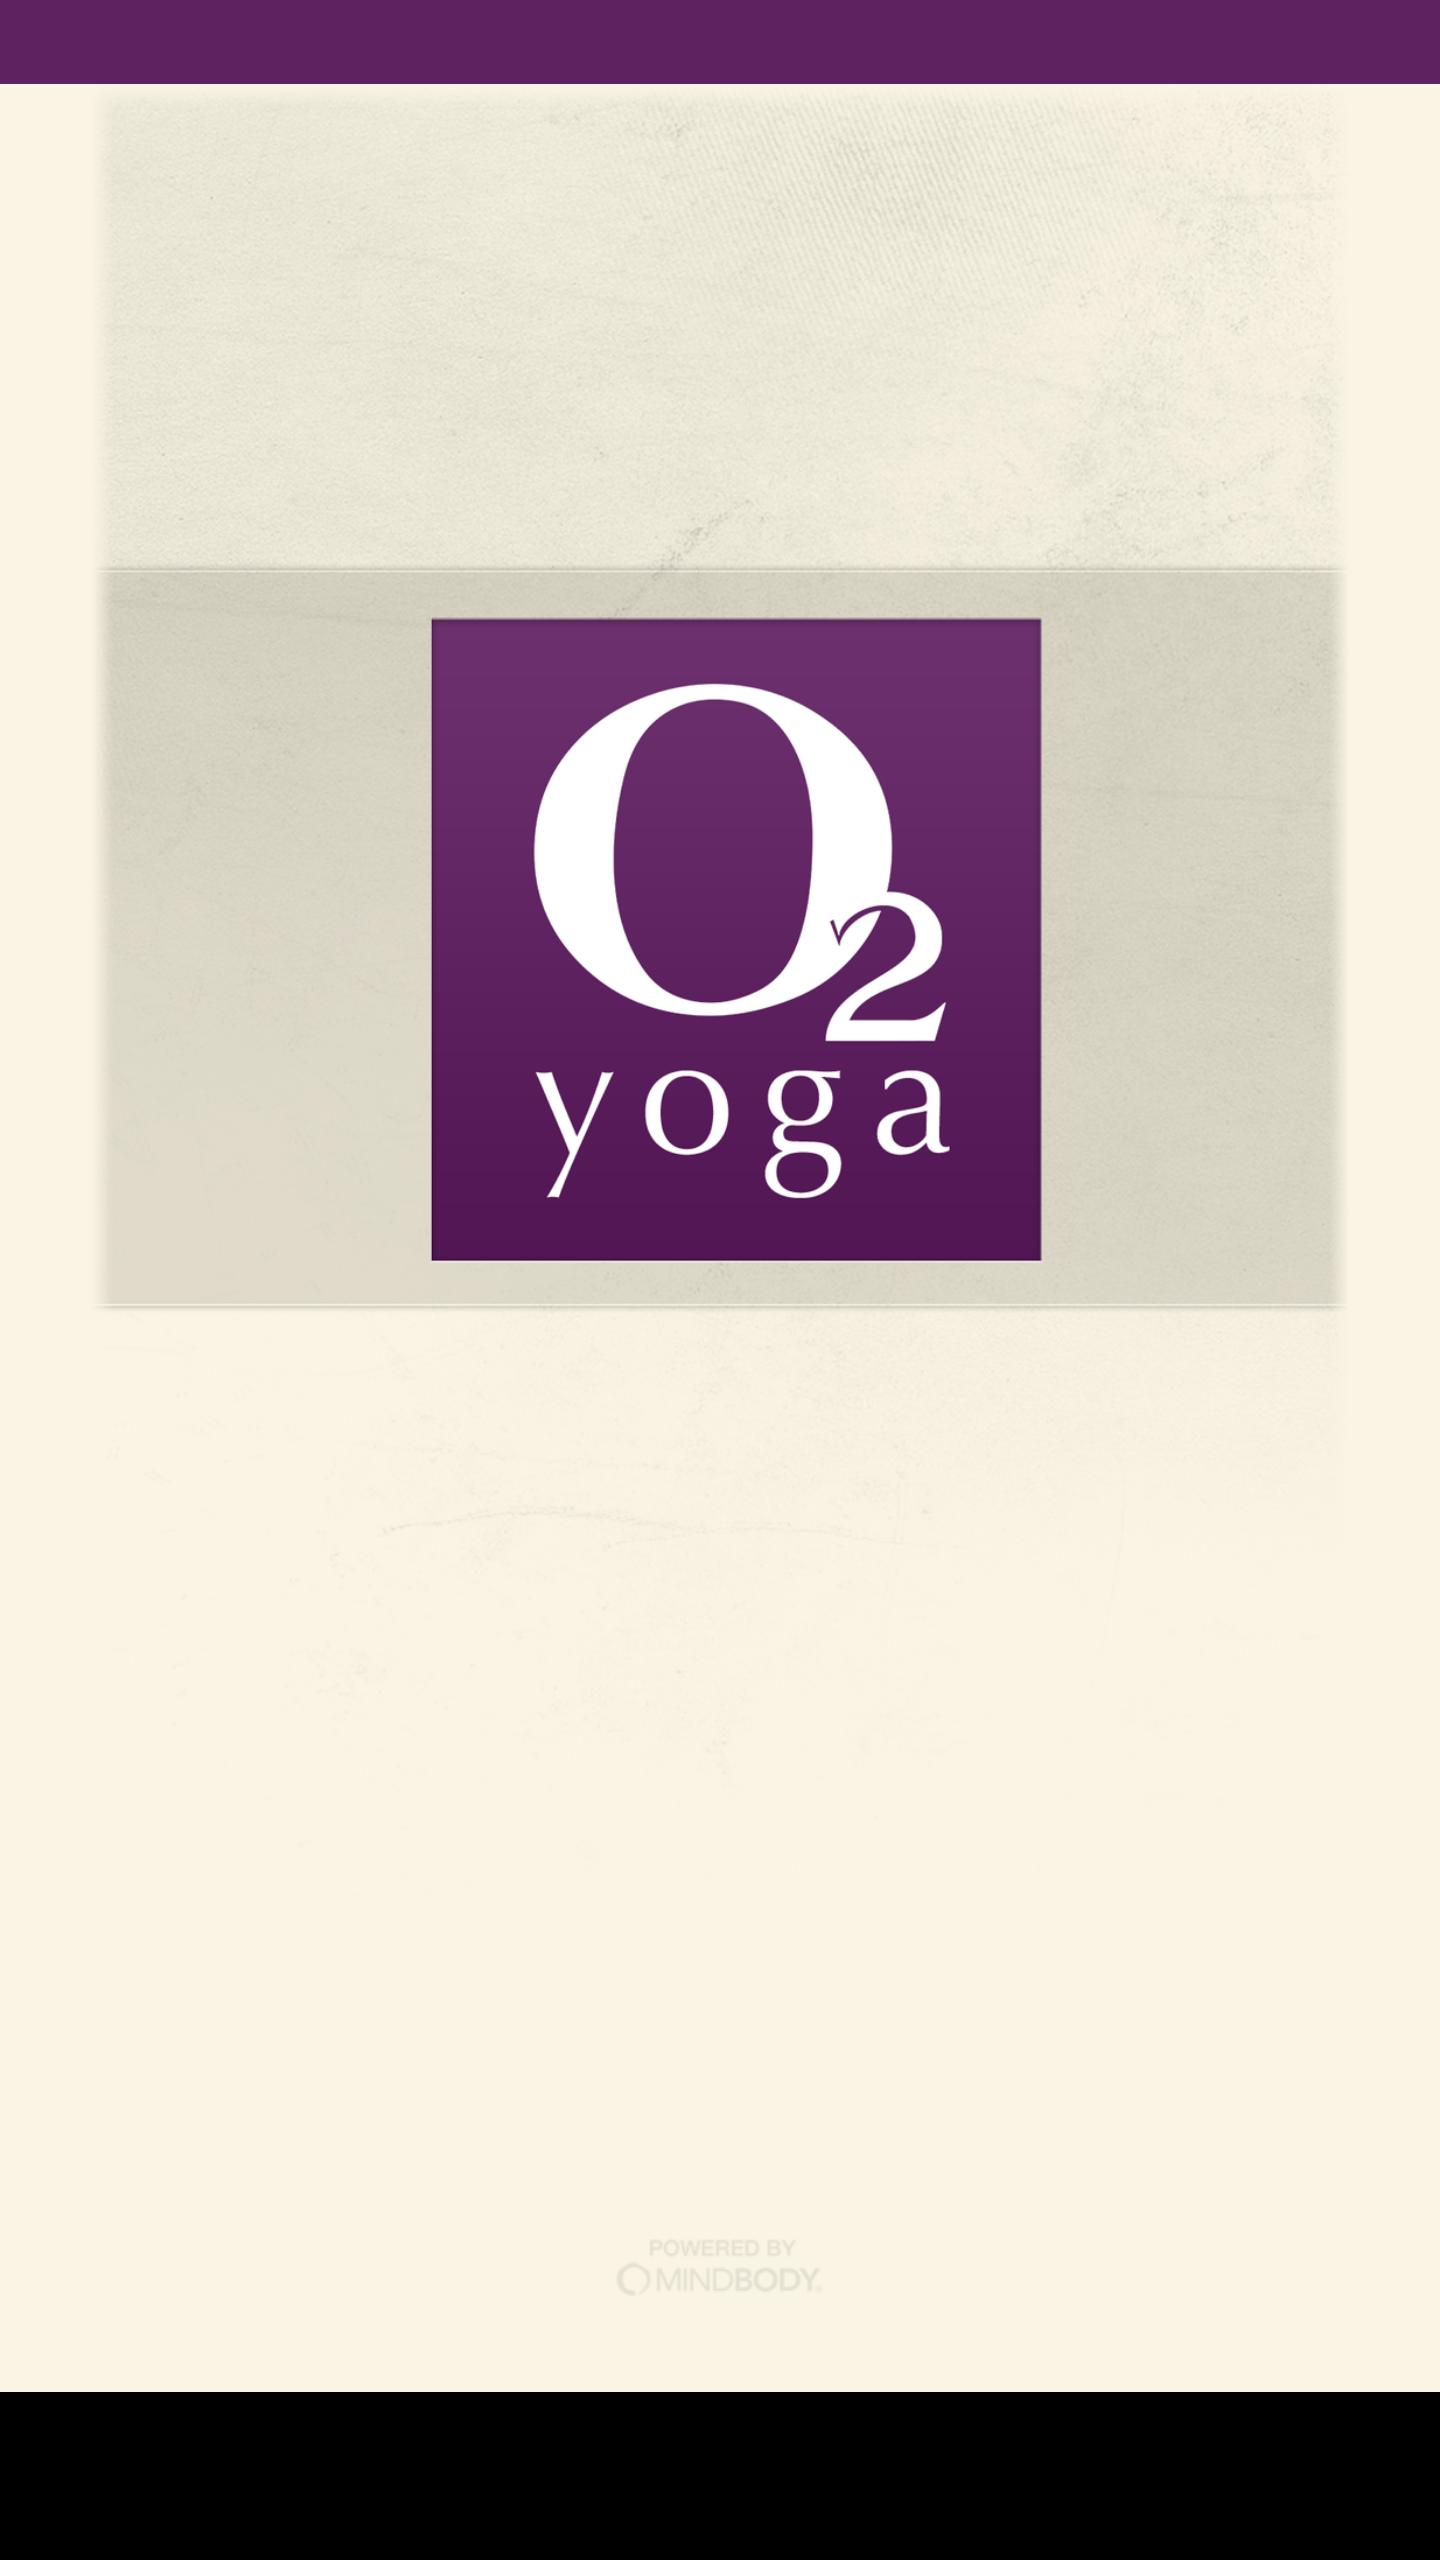 O2 Yoga For Android Apk Download